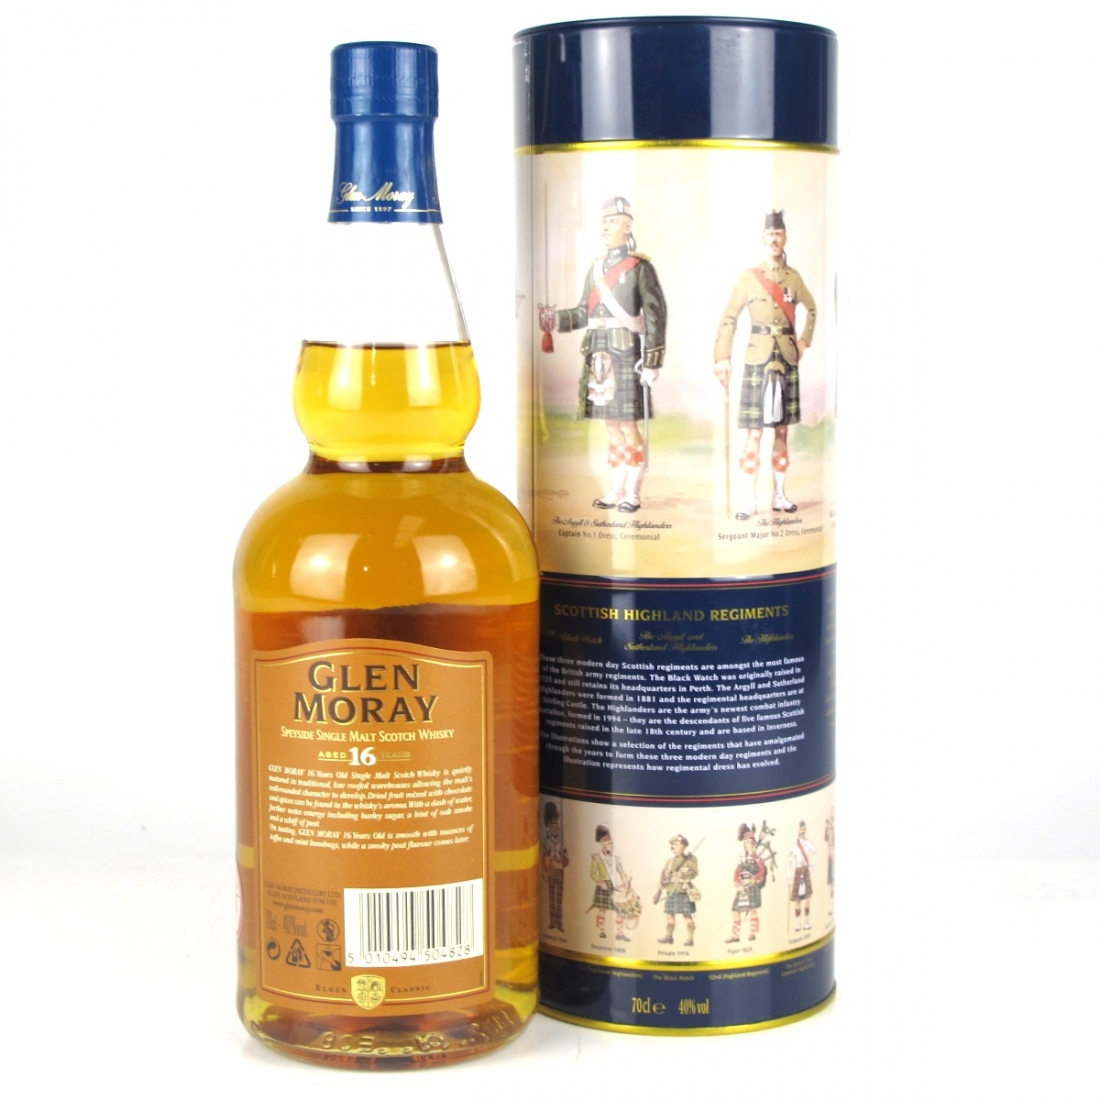 Glen Moray 16 Year Old